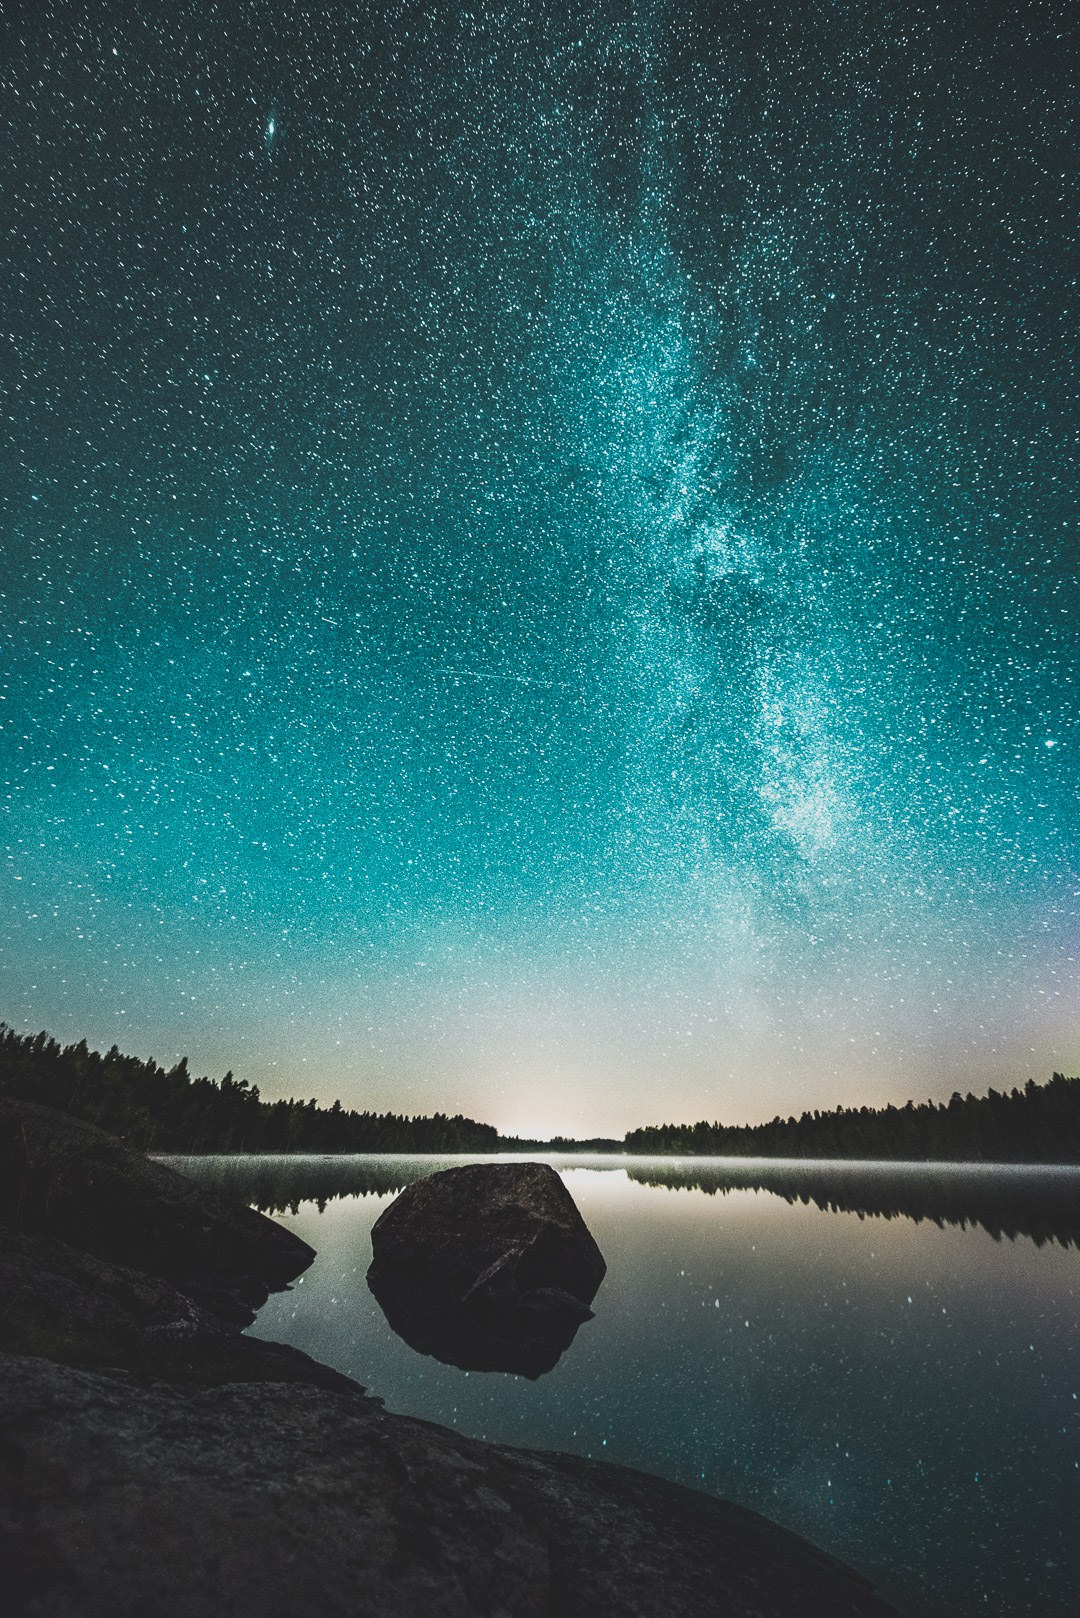 The Night Skies Over Finland & Iceland Saturated with Stars Photographed by Mikko Lagerstedt